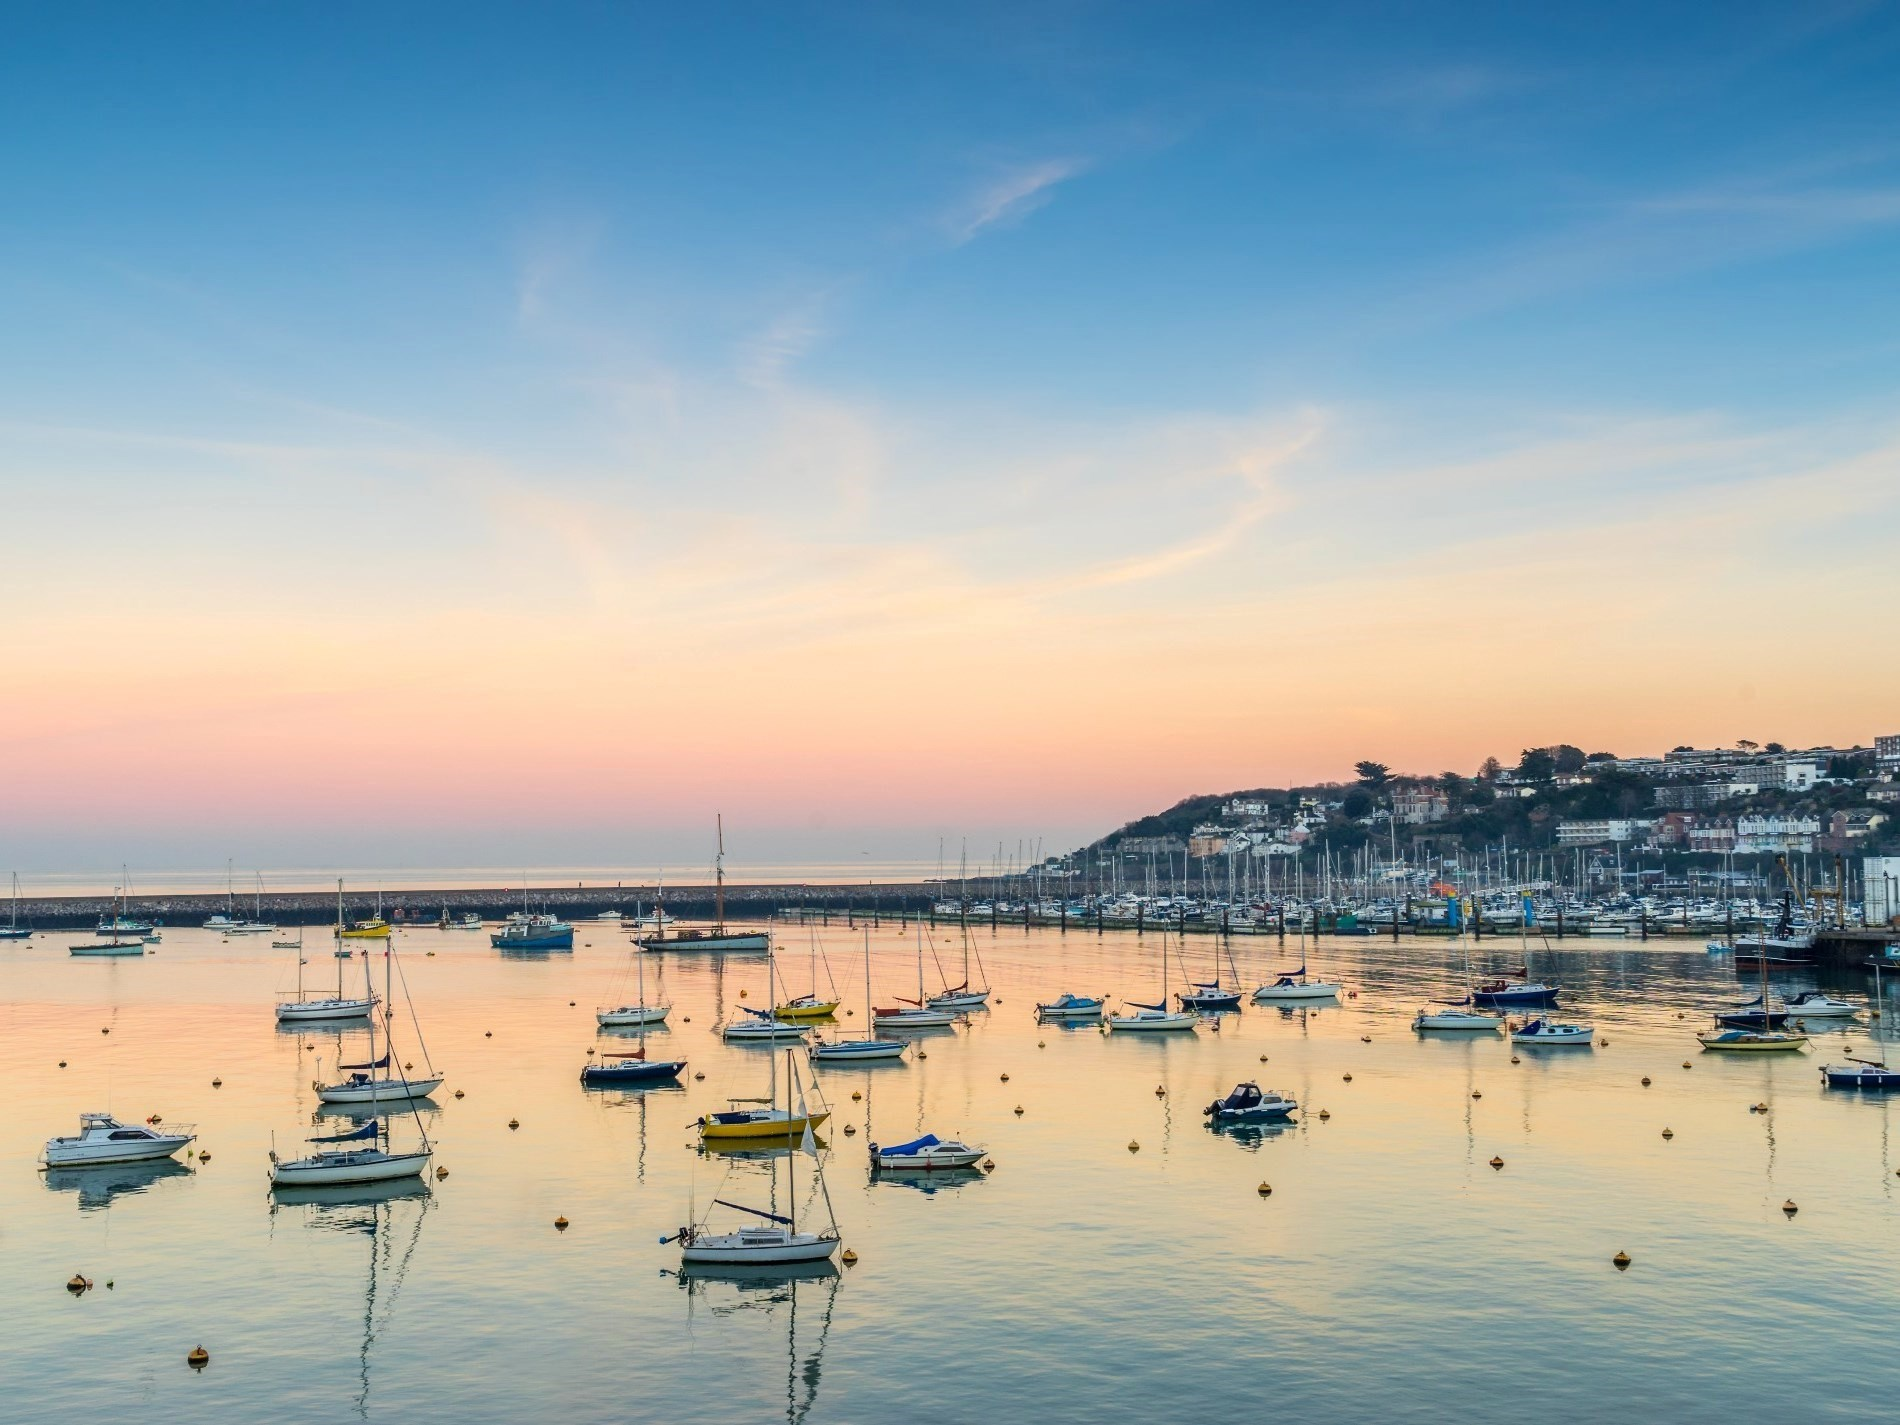 Beautiful views of Brixham Marina at dusk